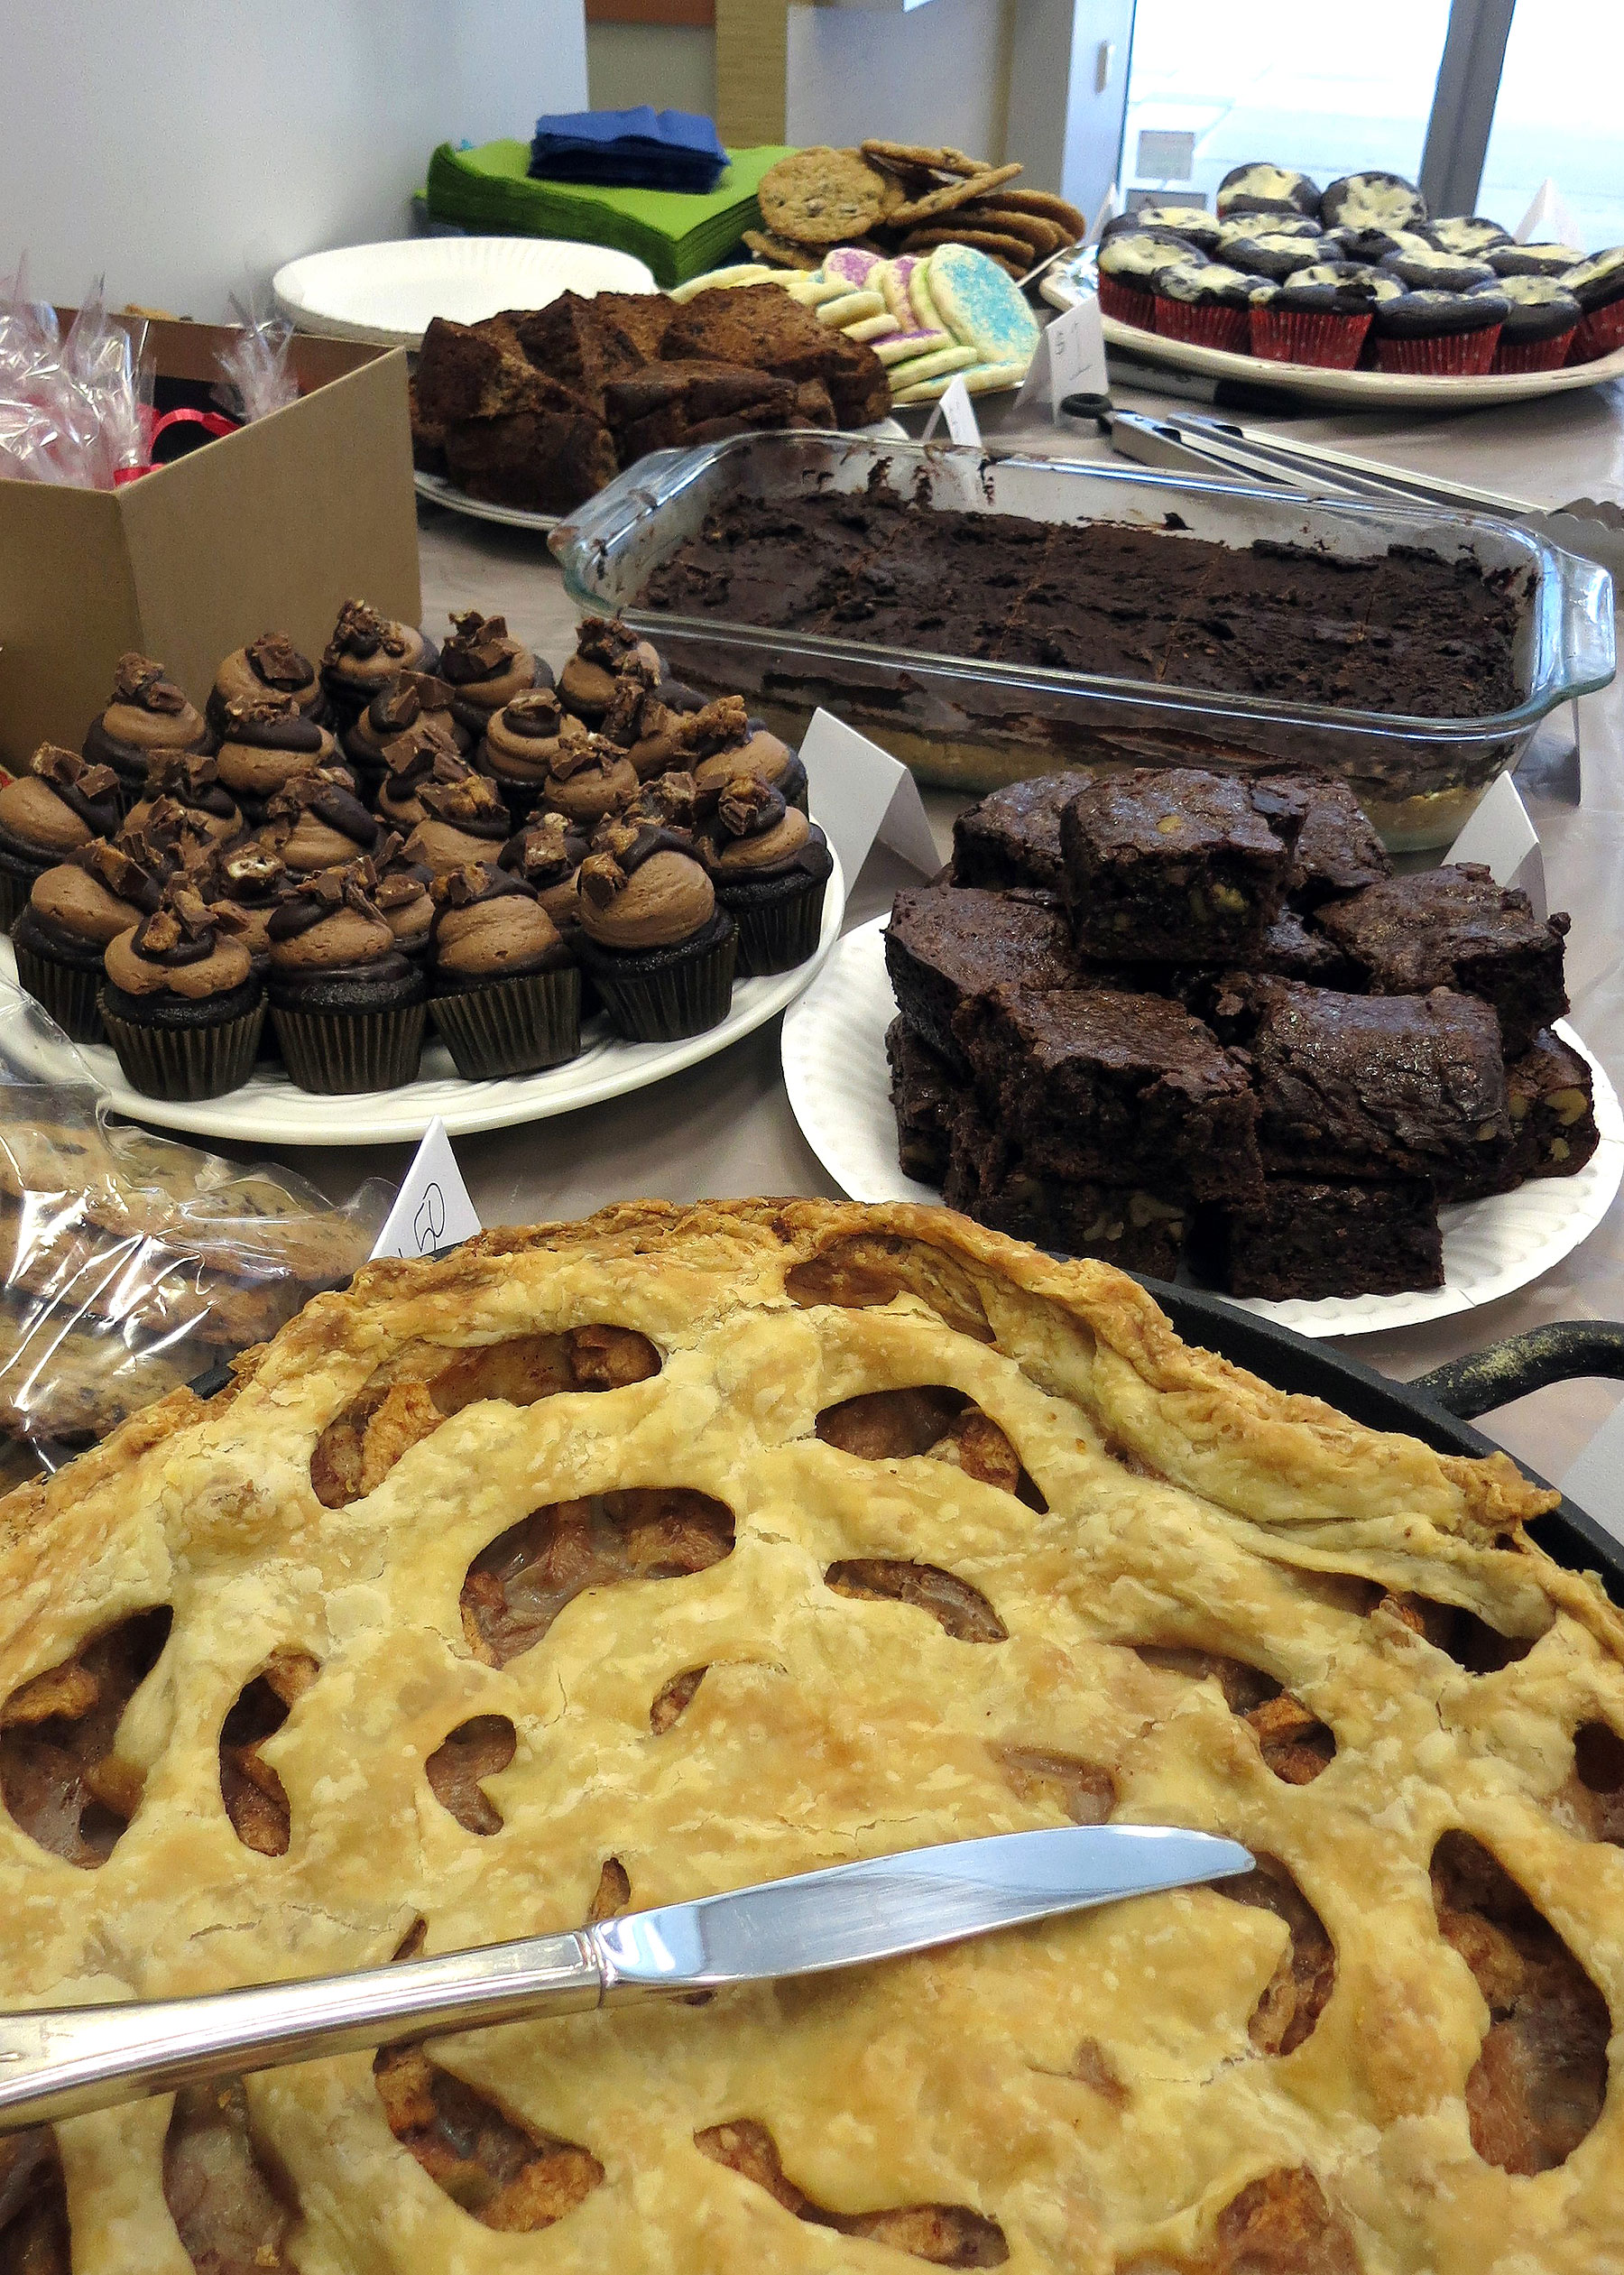 Bake sale in Vancouver, Canada, with various desserts including pie, brownies and cupcakes